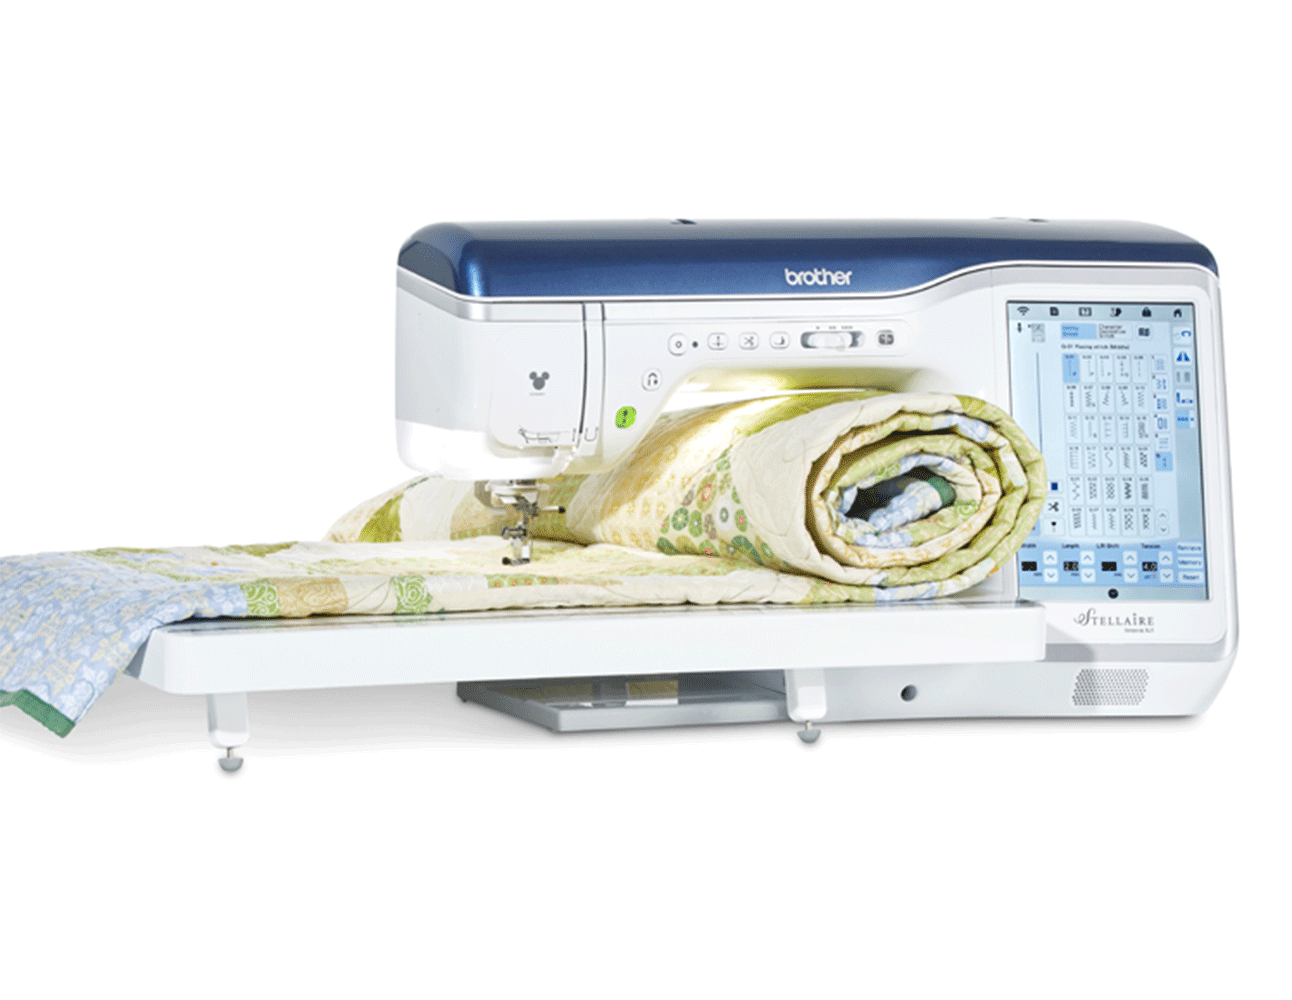 Rolled up quilt in Stellaire XJ1 sewing and embroidery machine